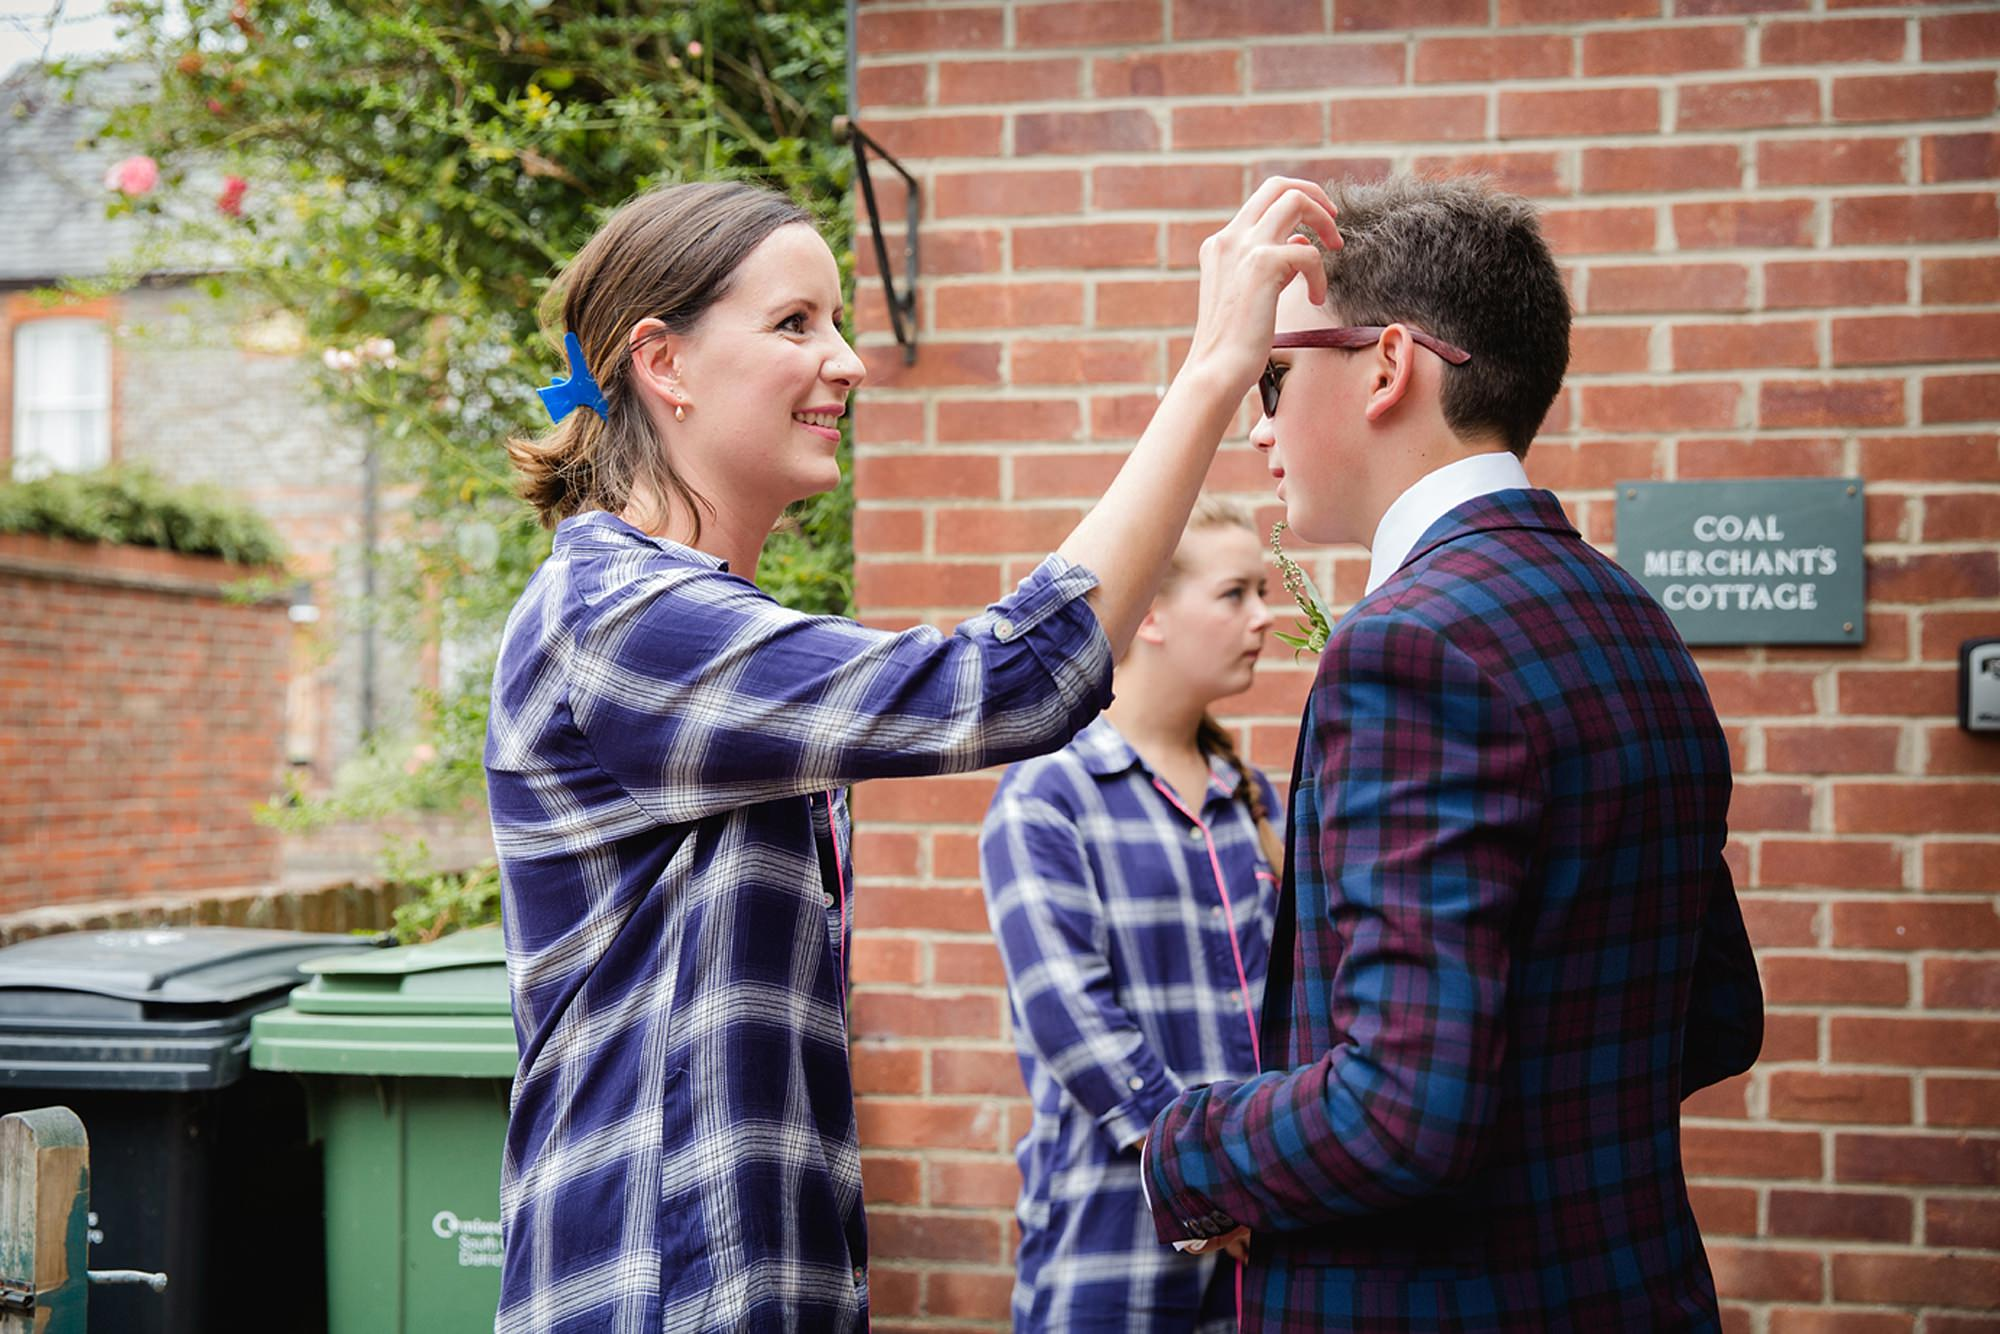 outdoor humanist wedding photography bride doing brother's hair